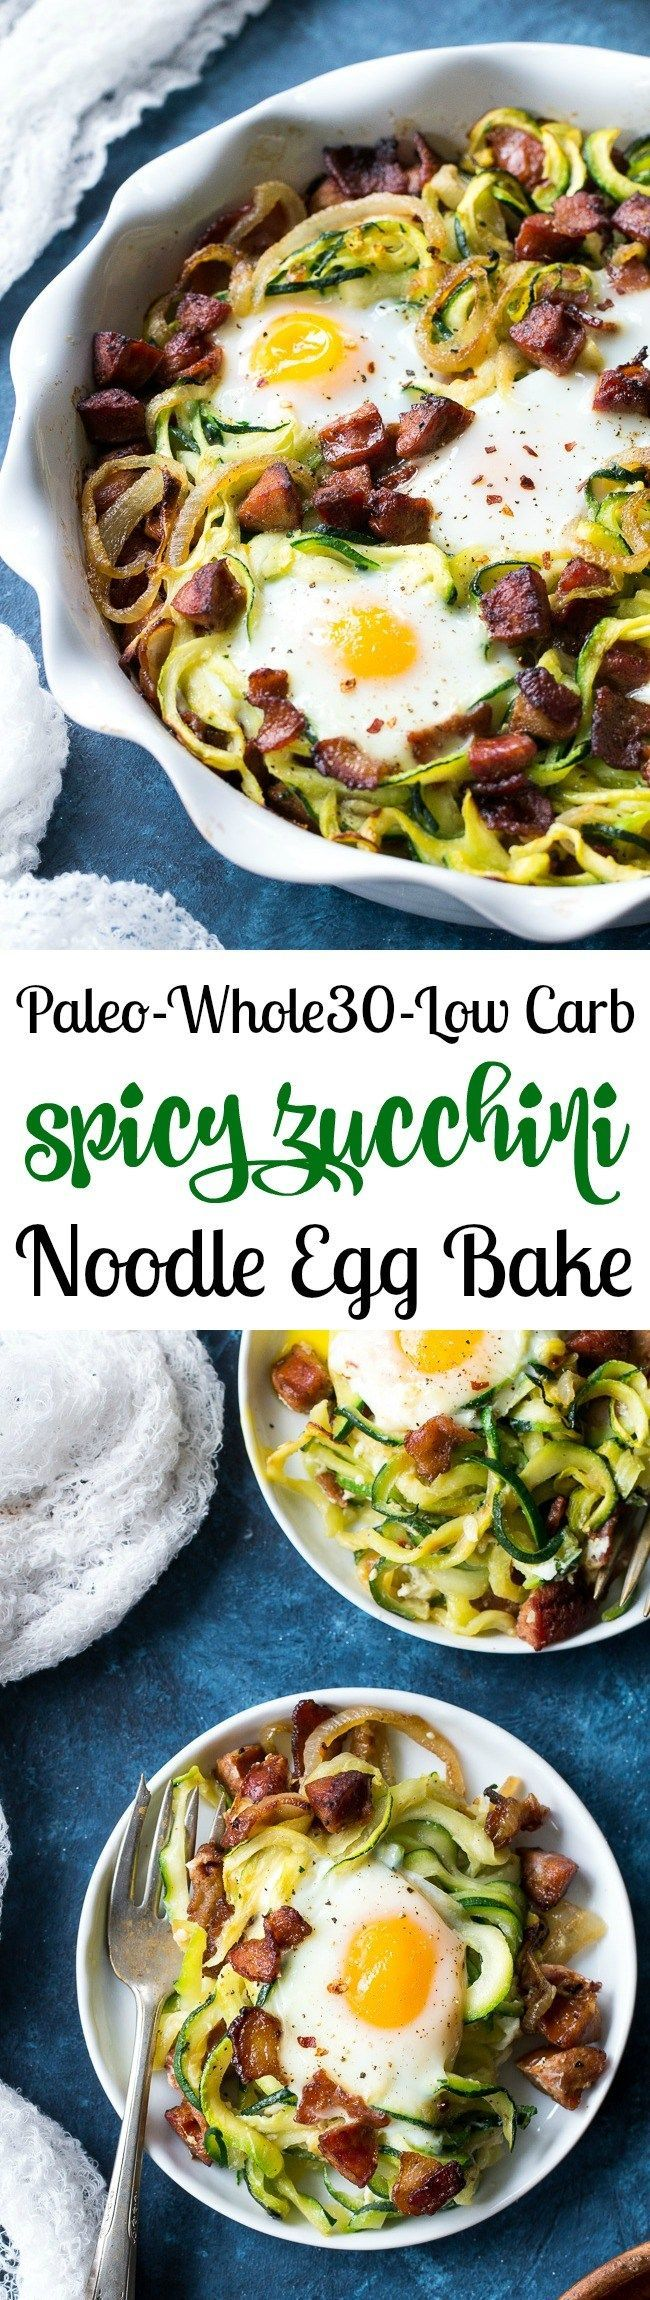 This spicy zucchini noodle egg bake is loaded with sautéed onions, spicy sausage, crispy bacon and of course eggs!  Perfect for breakfast, lunch or dinner, it's Paleo, Whole30 and low carb.